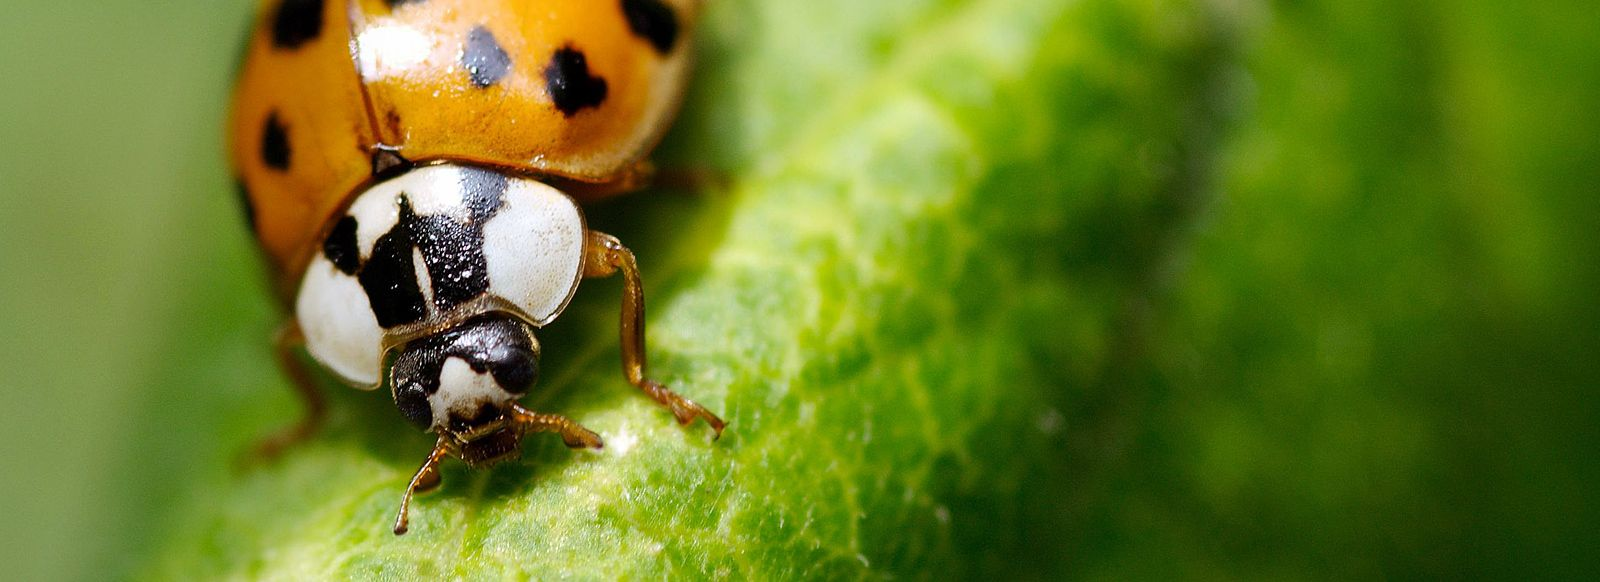 Marks Pest Control is a stateoftheart service provider